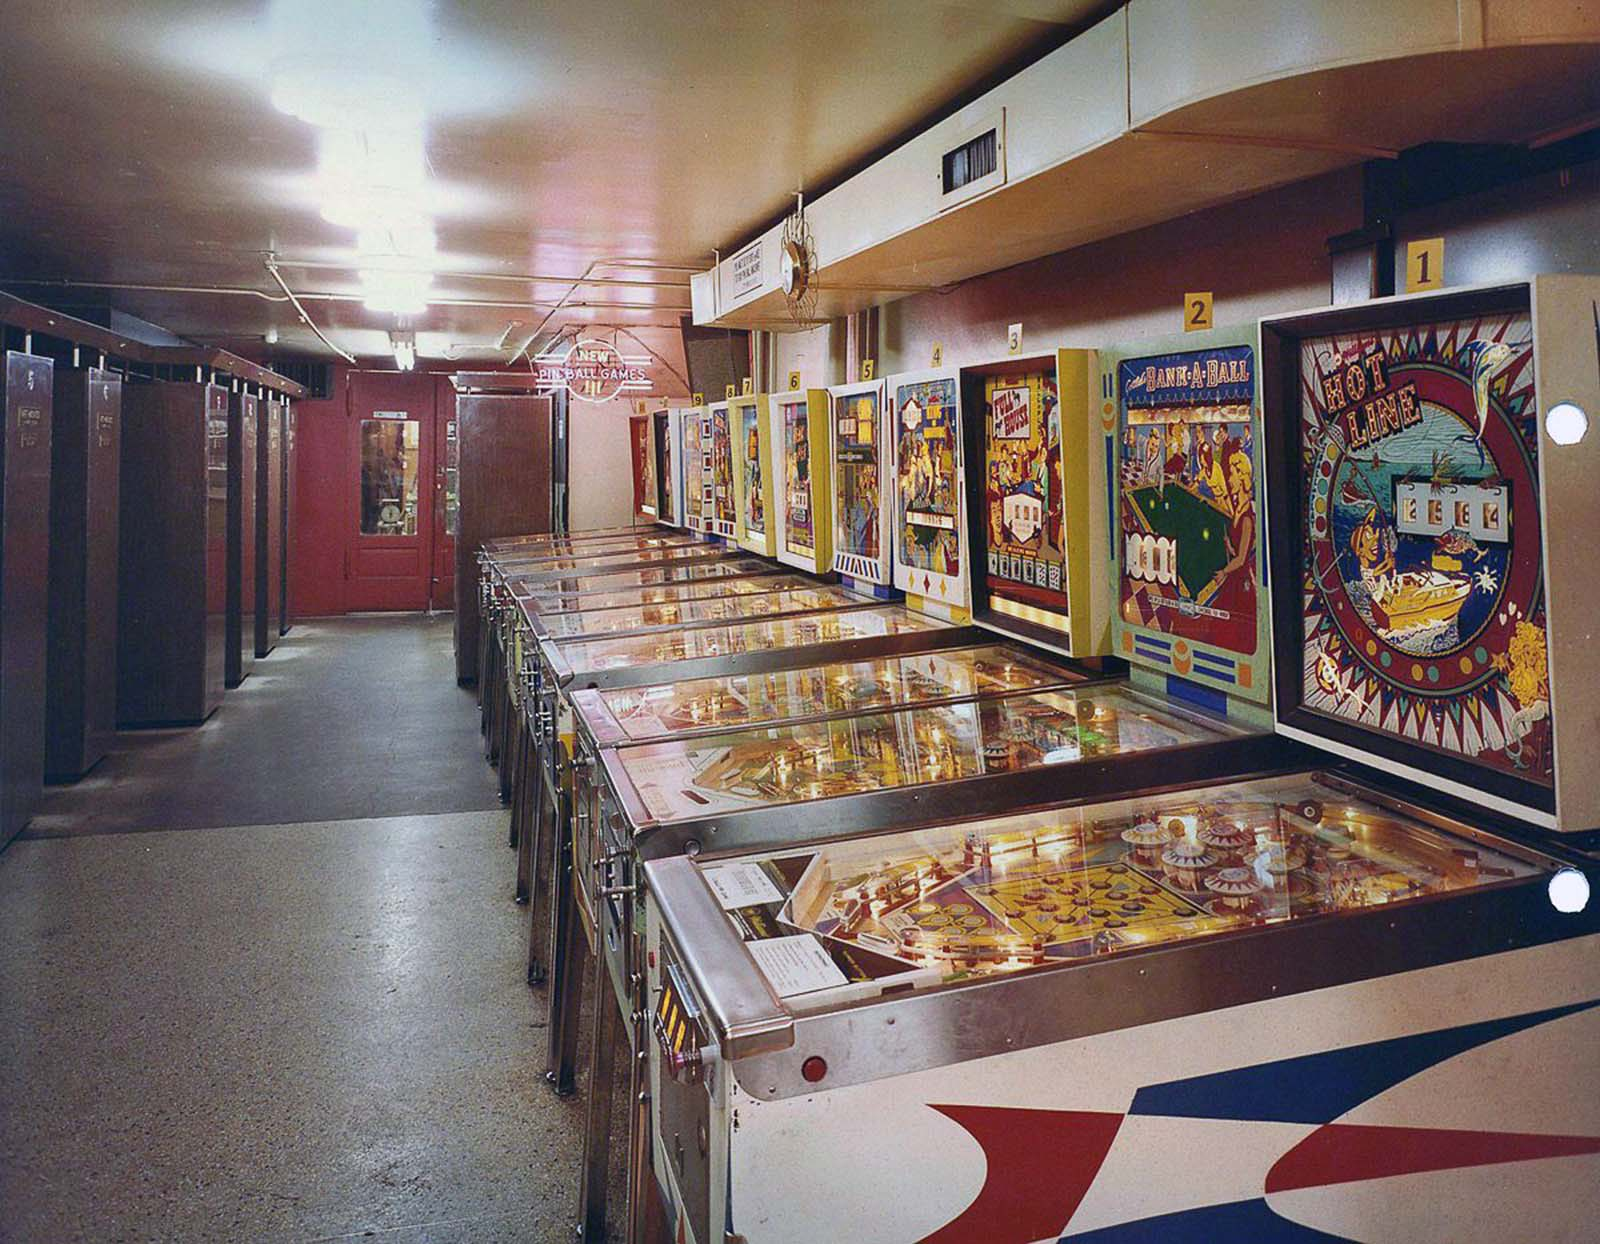 The arcades were so popular that many food chains started adding in coin operated arcade machines in their restaurants, like Chuck E. Cheese's and Dave and Busters.